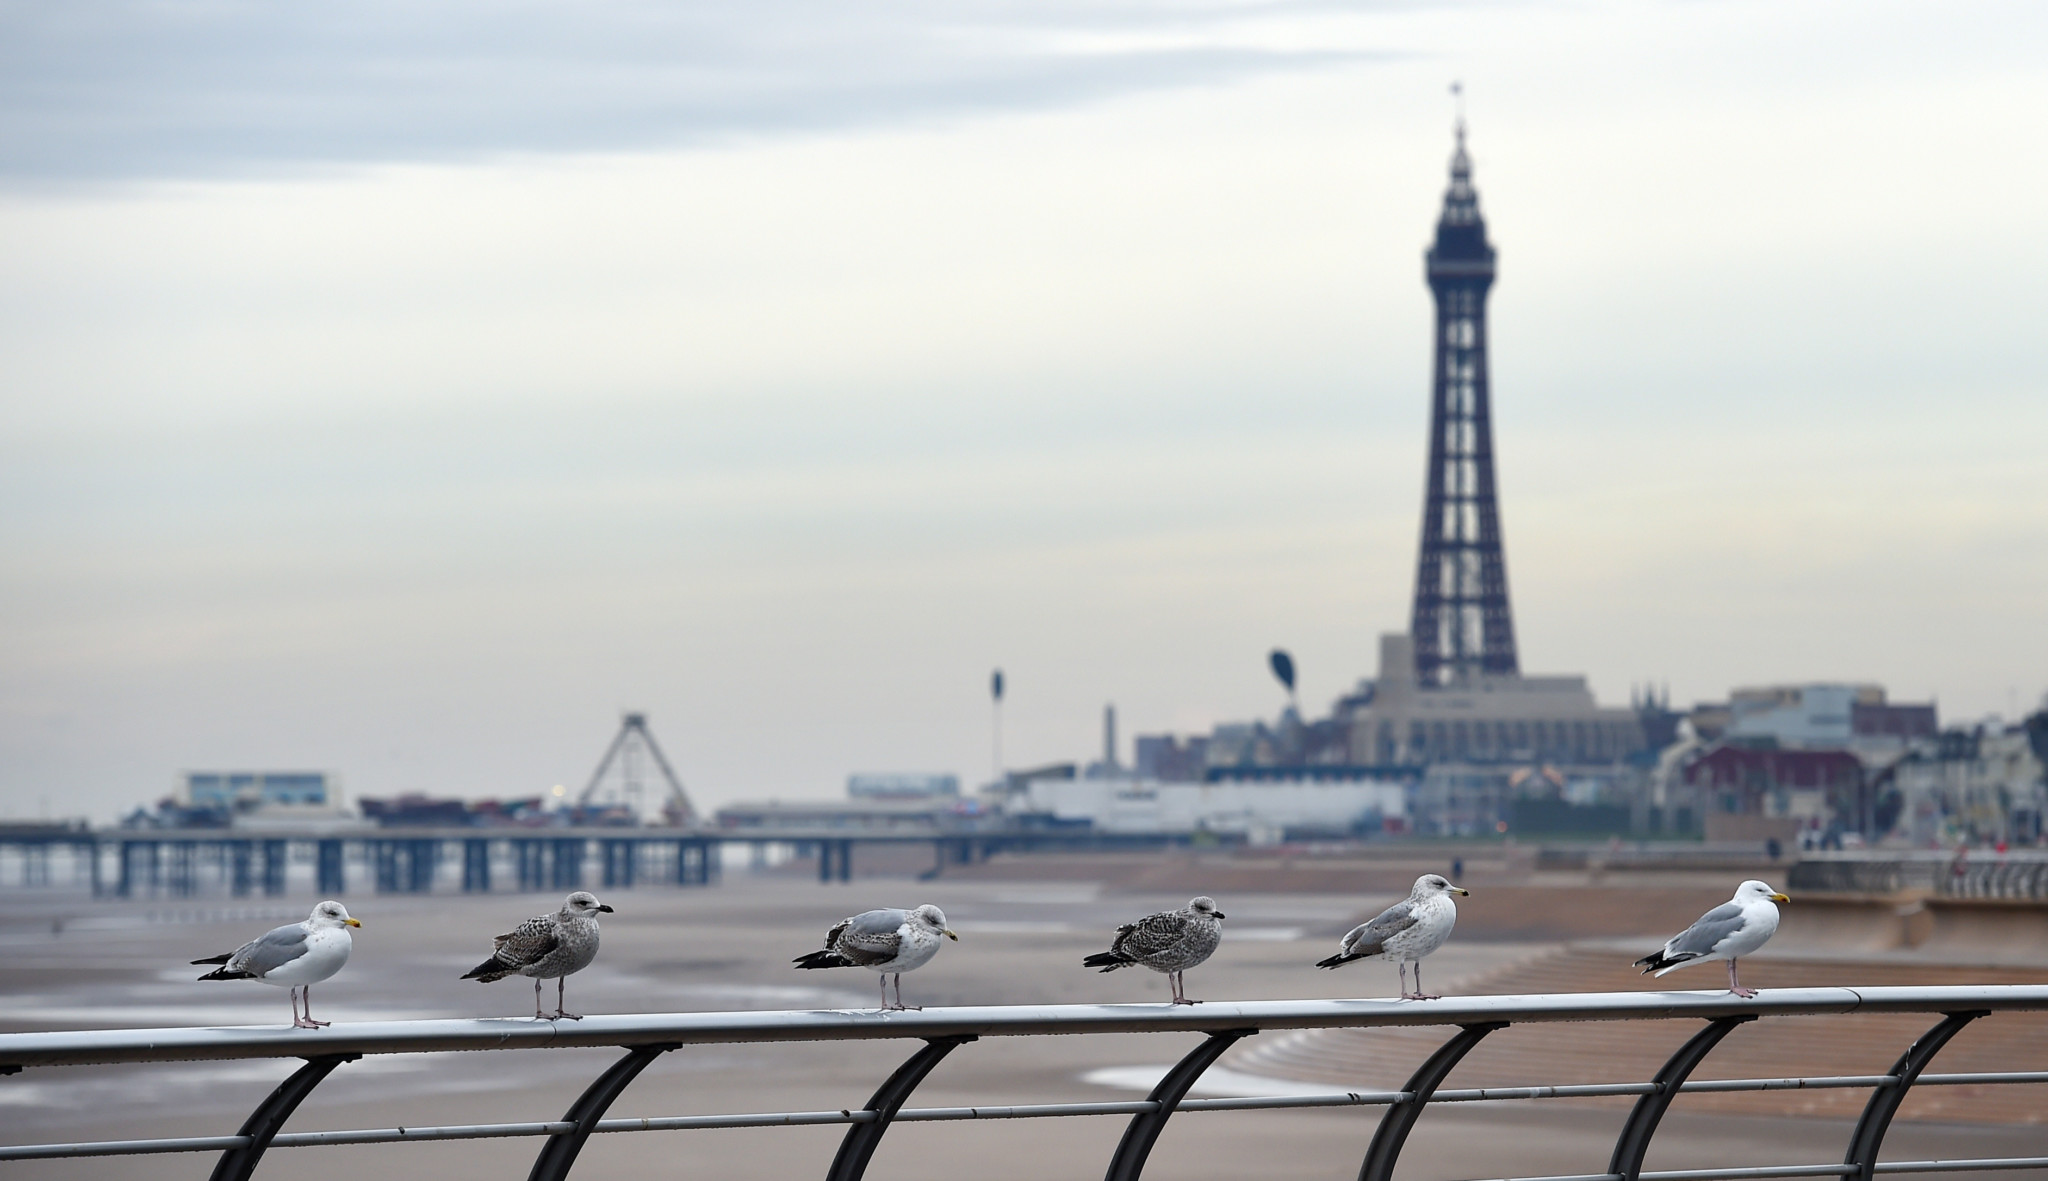 BRITAIN-LIFESTYLE-TOURISM-LEISURE-BLACKPOOL